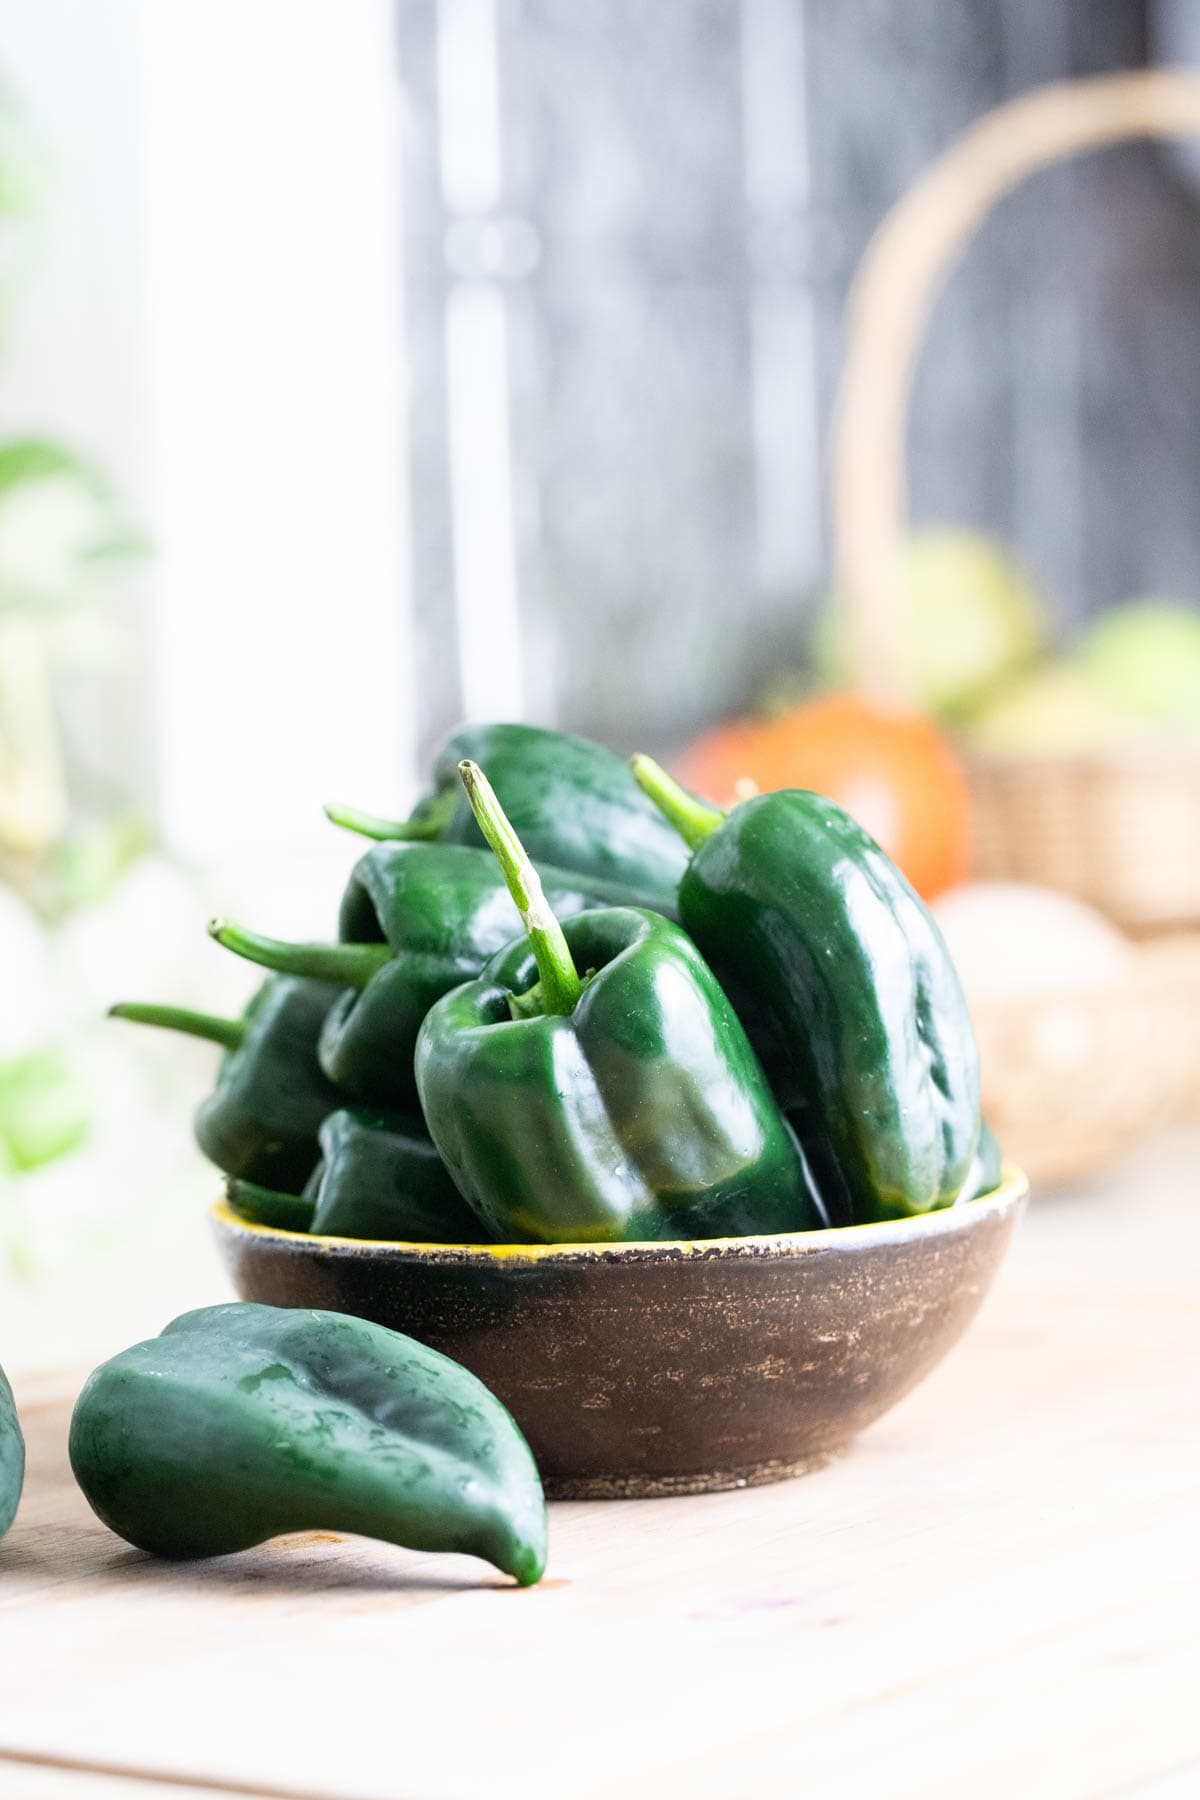 A bowl of freshly picked poblano peppers.